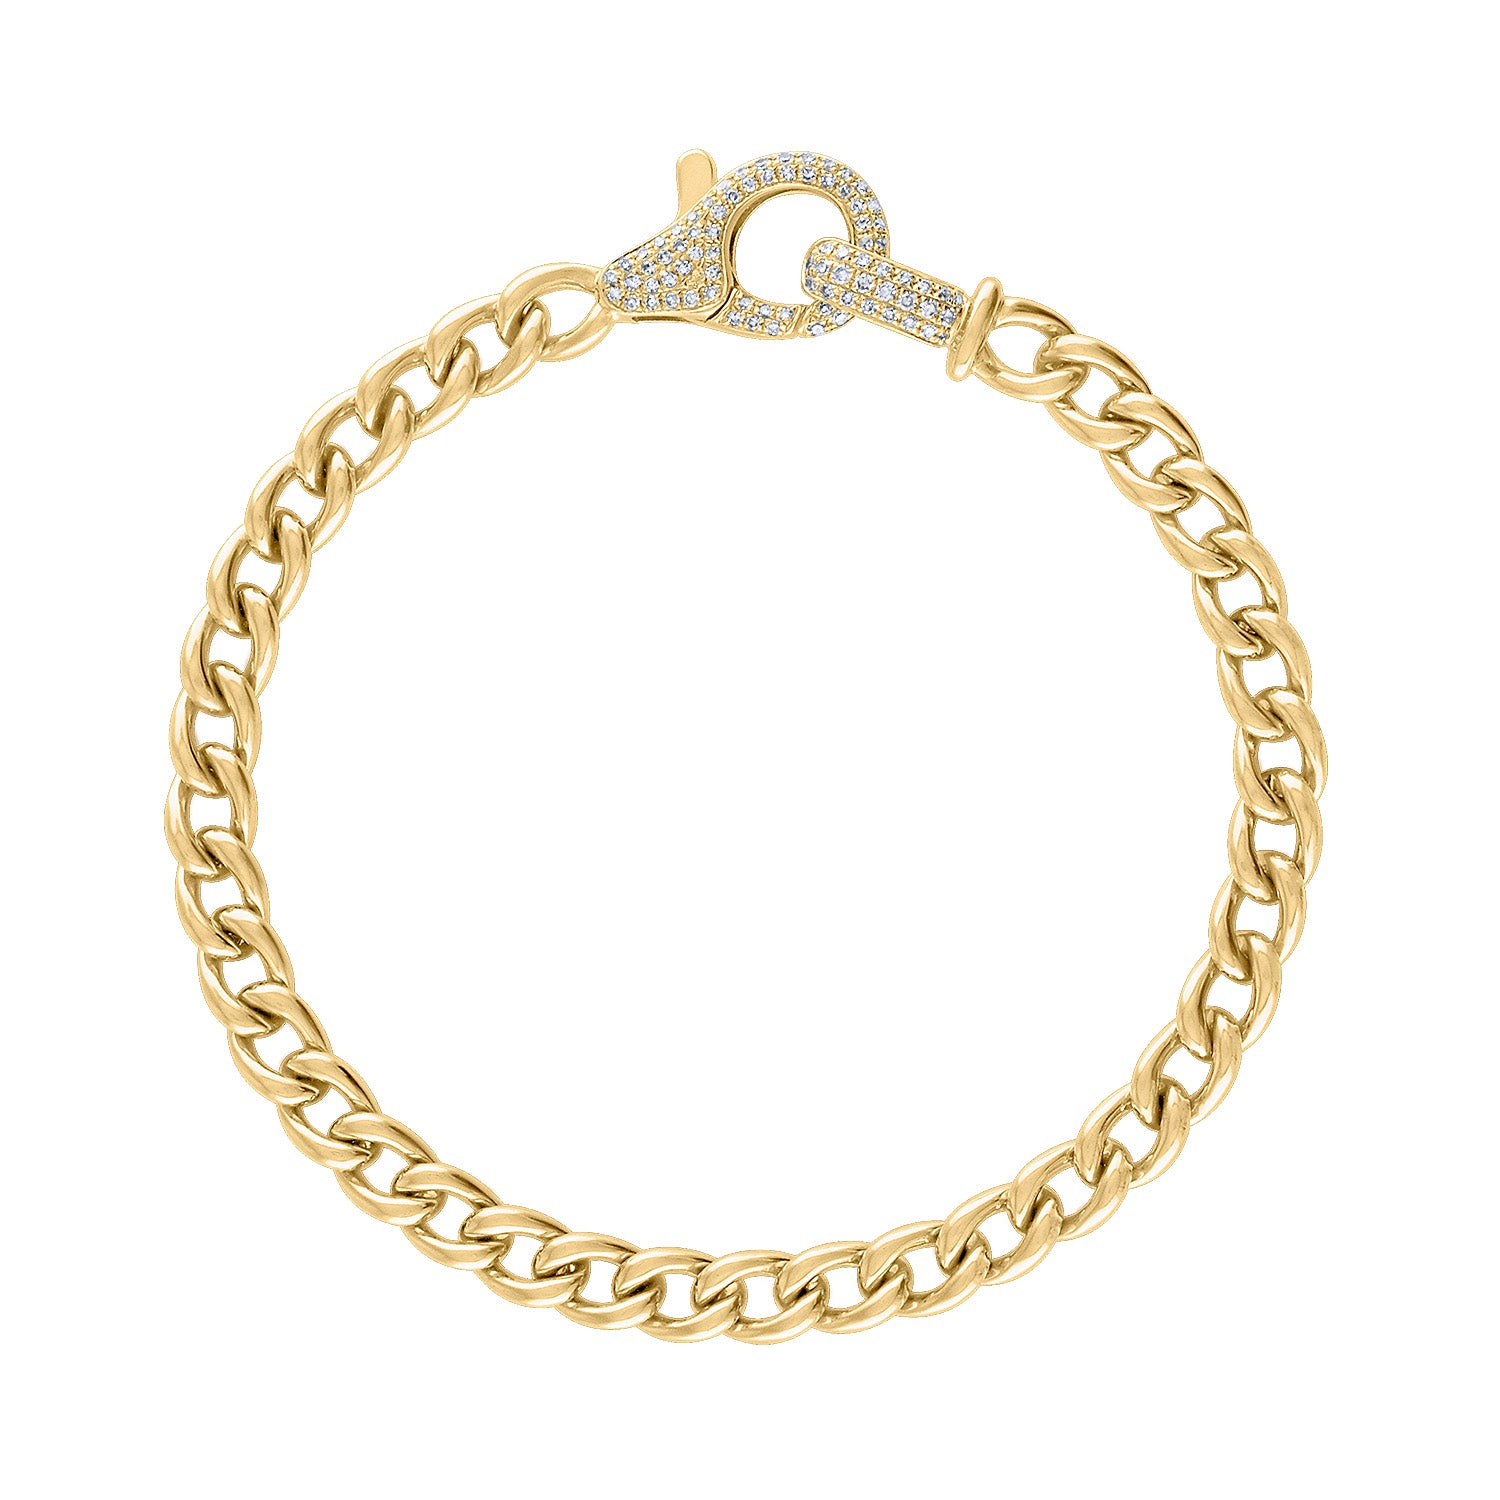 14KT GOLD CURB LINK WITH DIAMOND CLASP BRACELET